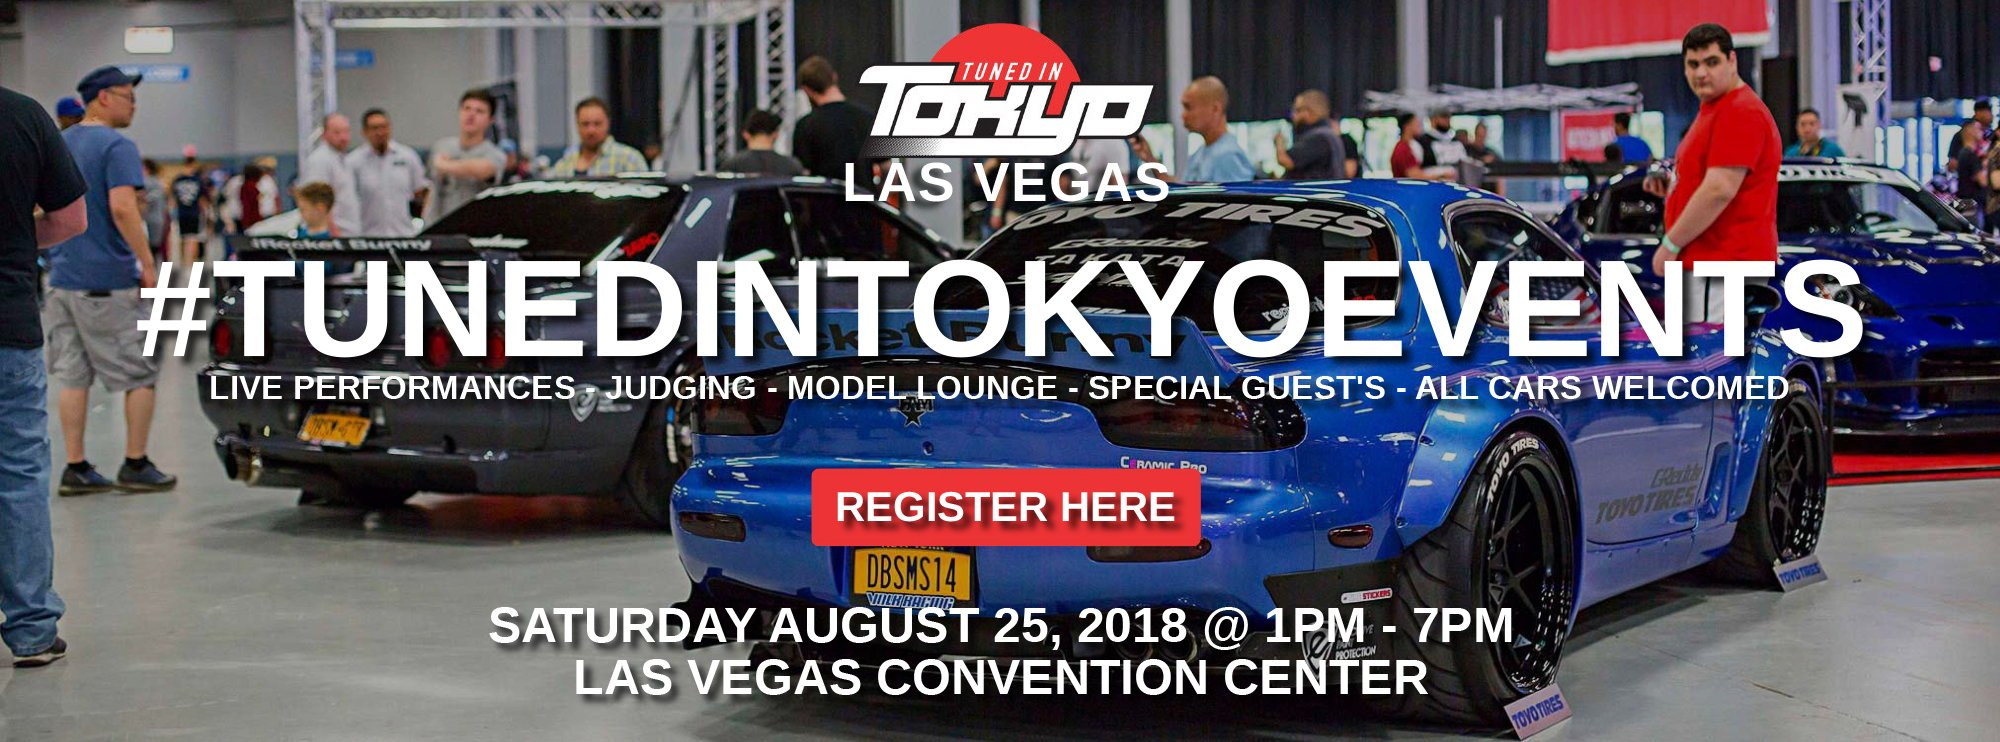 Las Vegas Tunedintokyoevents - Car show in vegas today